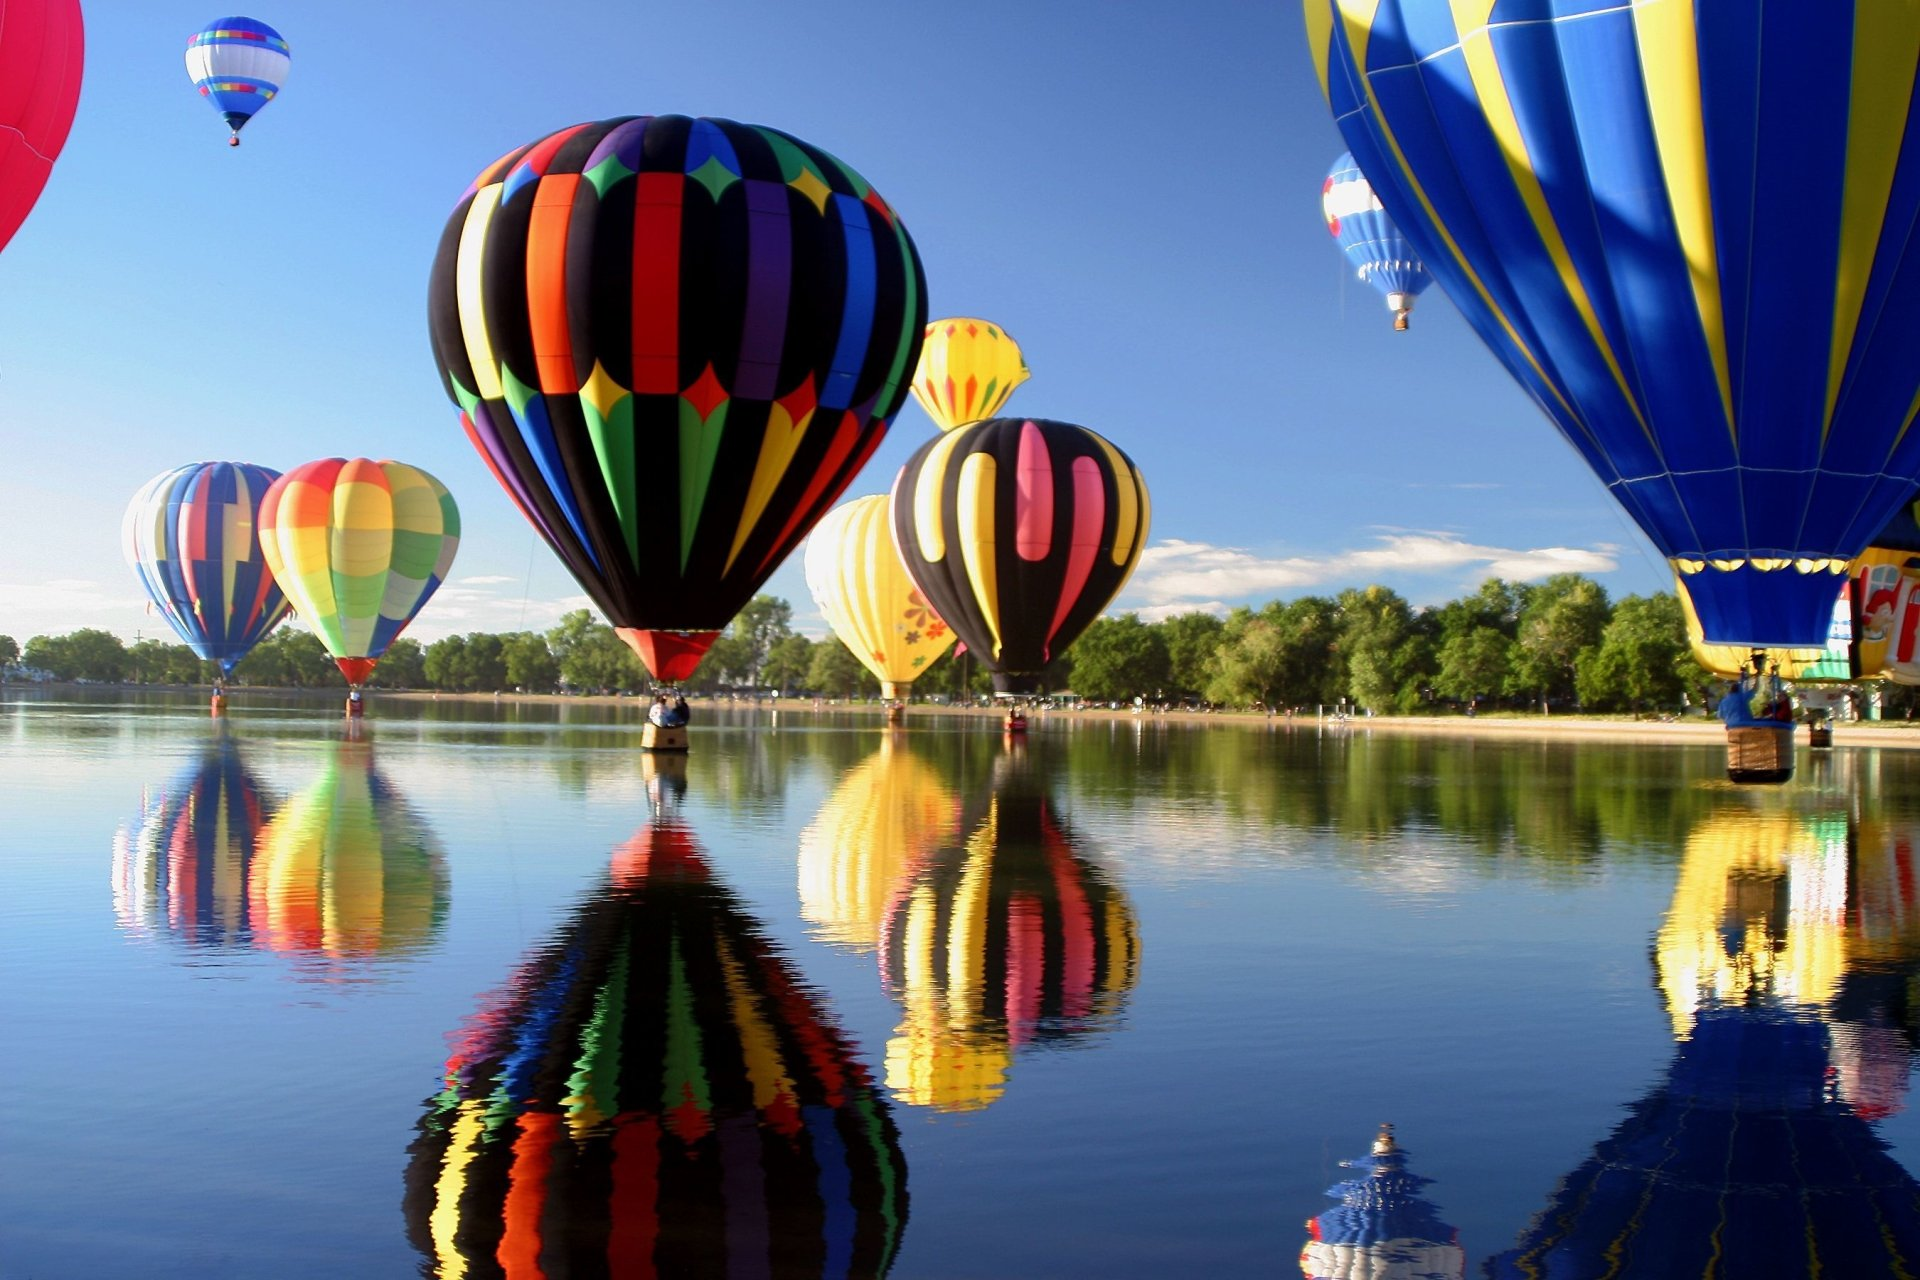 Vehicles - Hot Air Balloon  Wallpaper